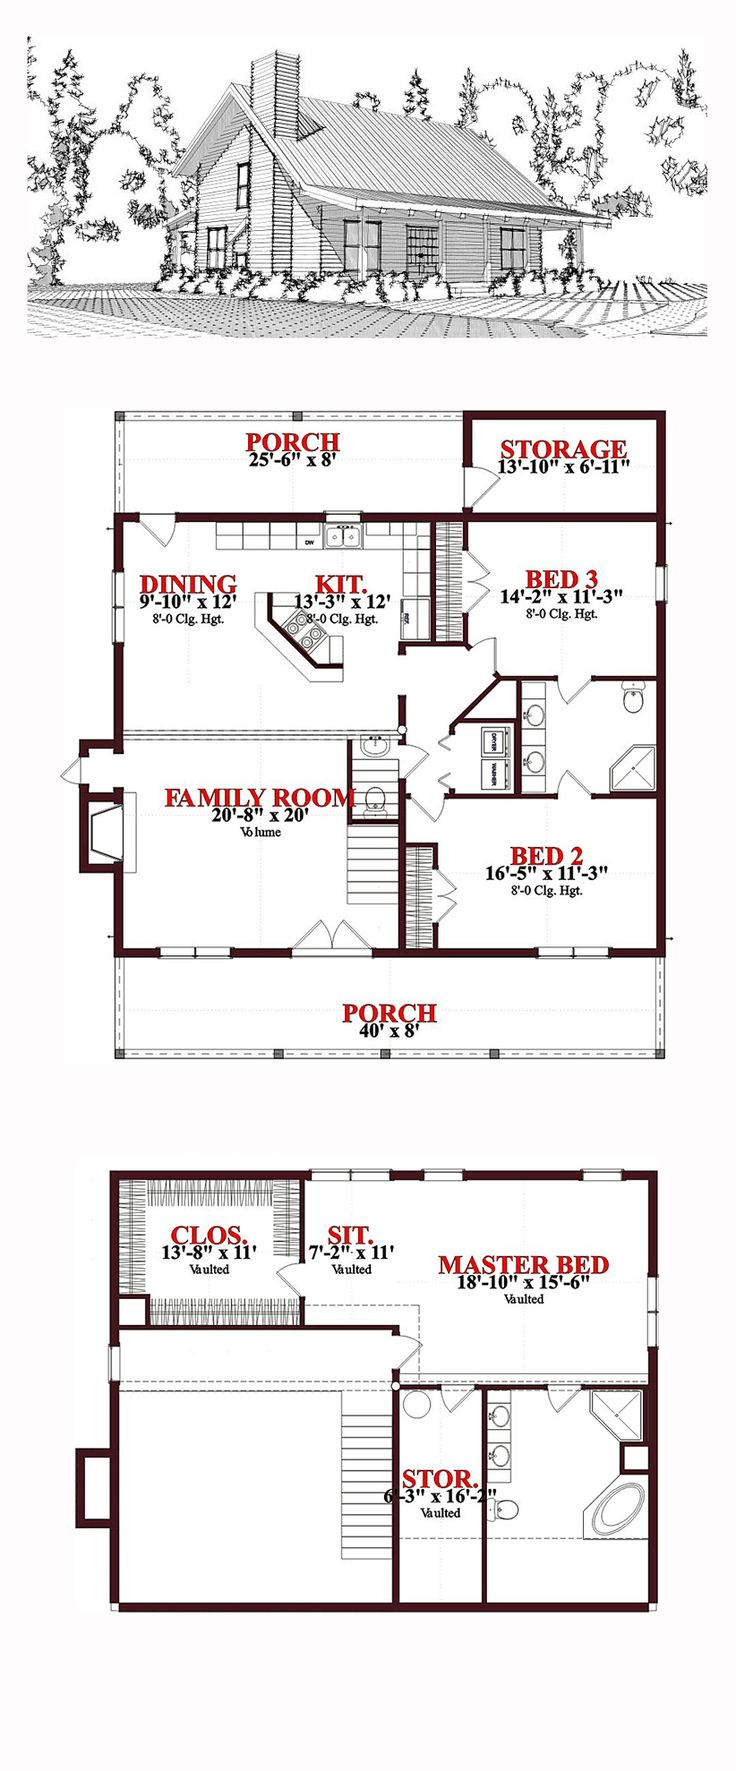 17 best images about saltbox house plans on pinterest for Salt box house plans